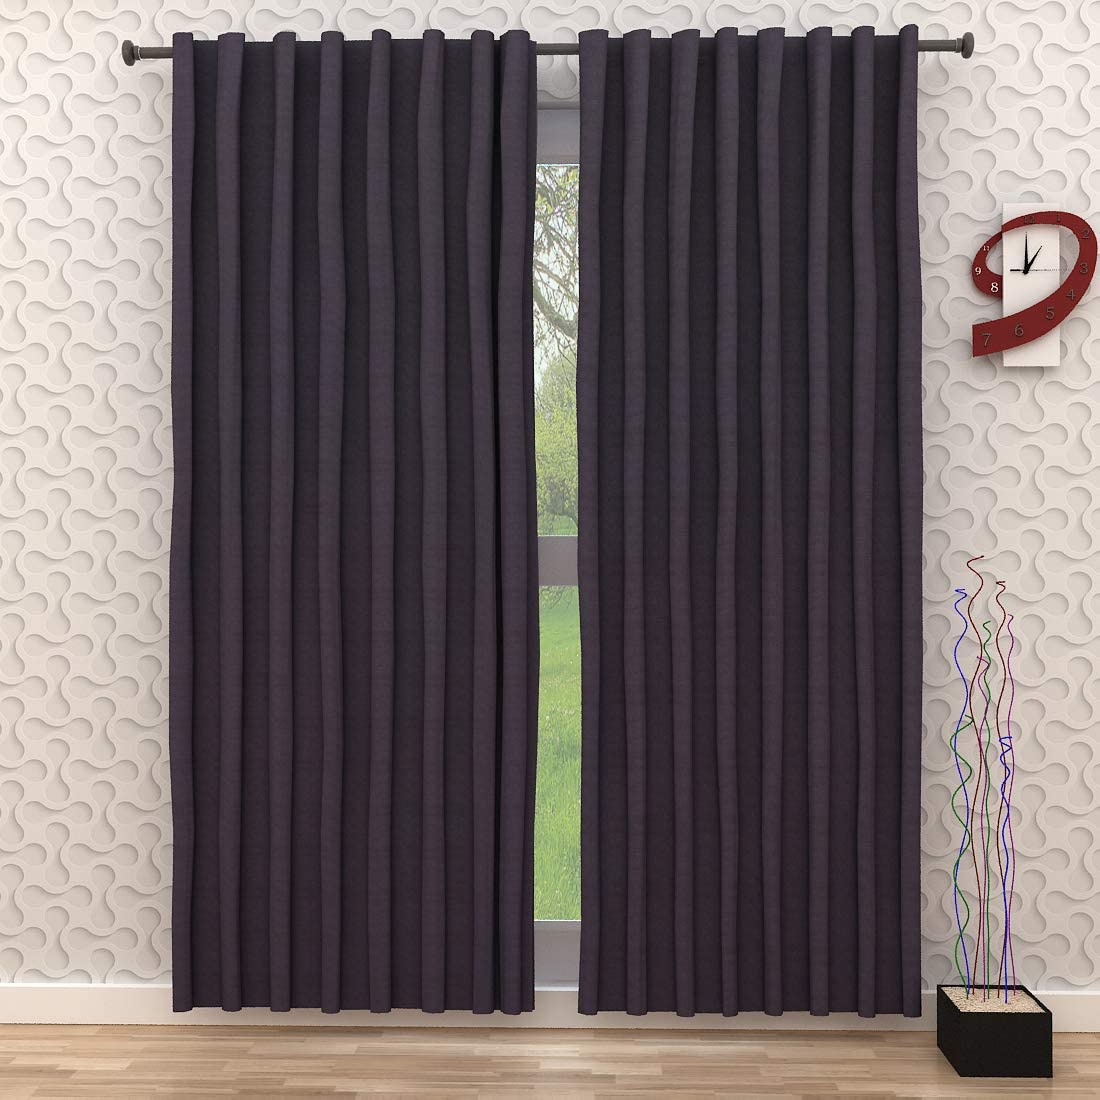 Linen Clubs Set of 2,100 Slub Cotton Duck Curtain Charcoal,Cotton Duck Reverse Tab Top Window Panels-50×108 inch,Machine Washable for Easy Care